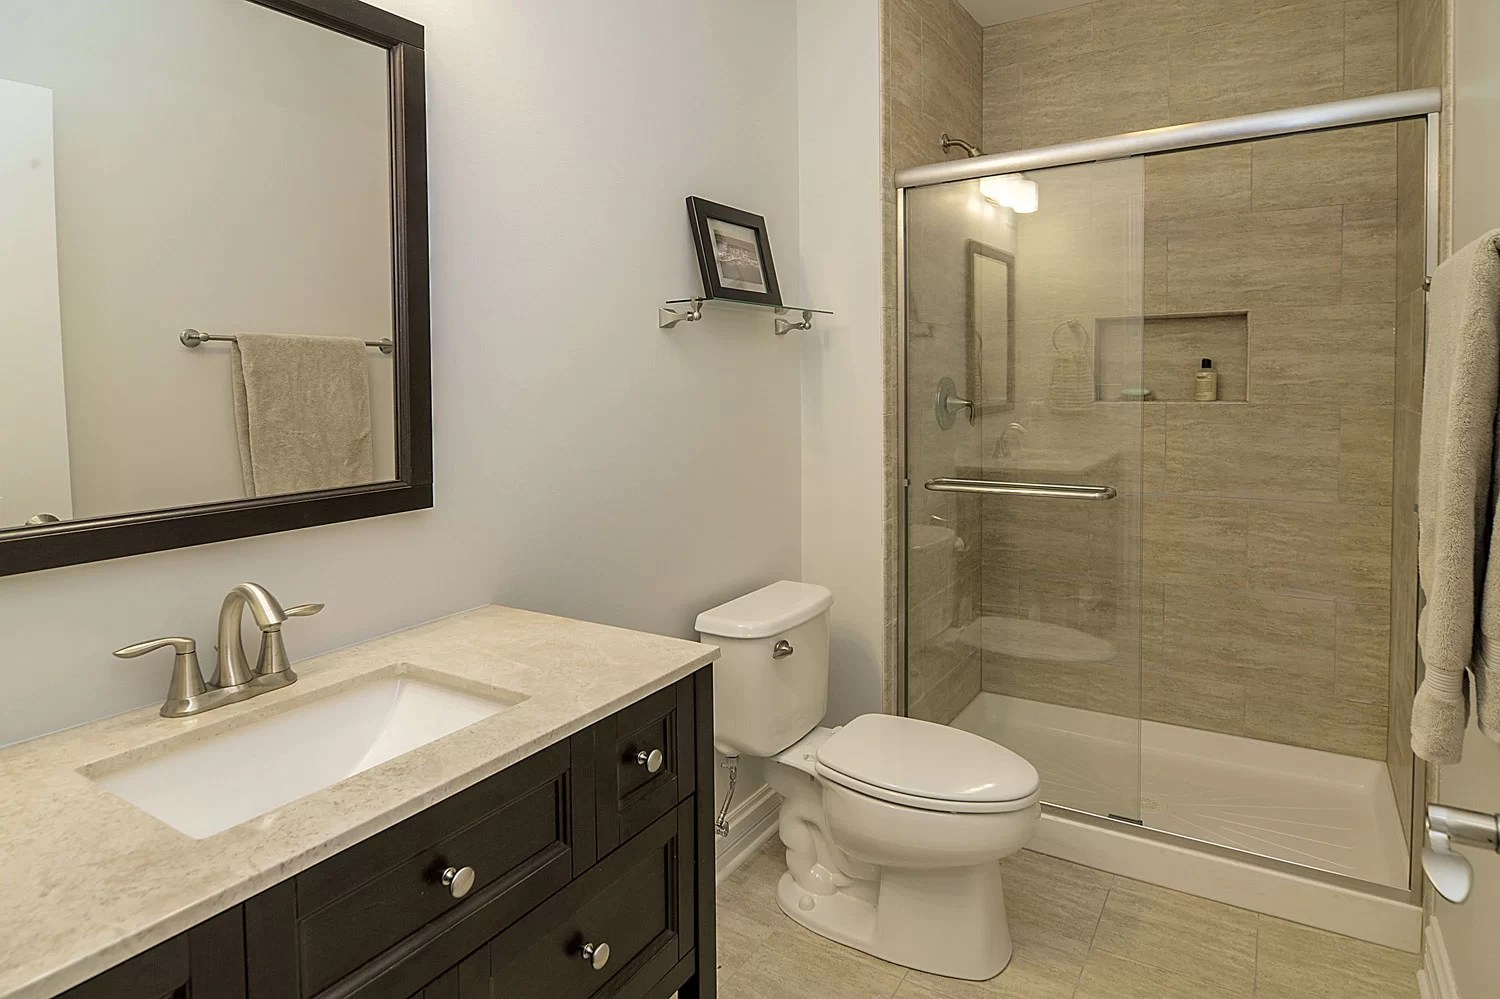 Steve & Emily's Hall Bathroom Remodel Pictures | Home ... on Bathroom Renovation Ideas  id=60164